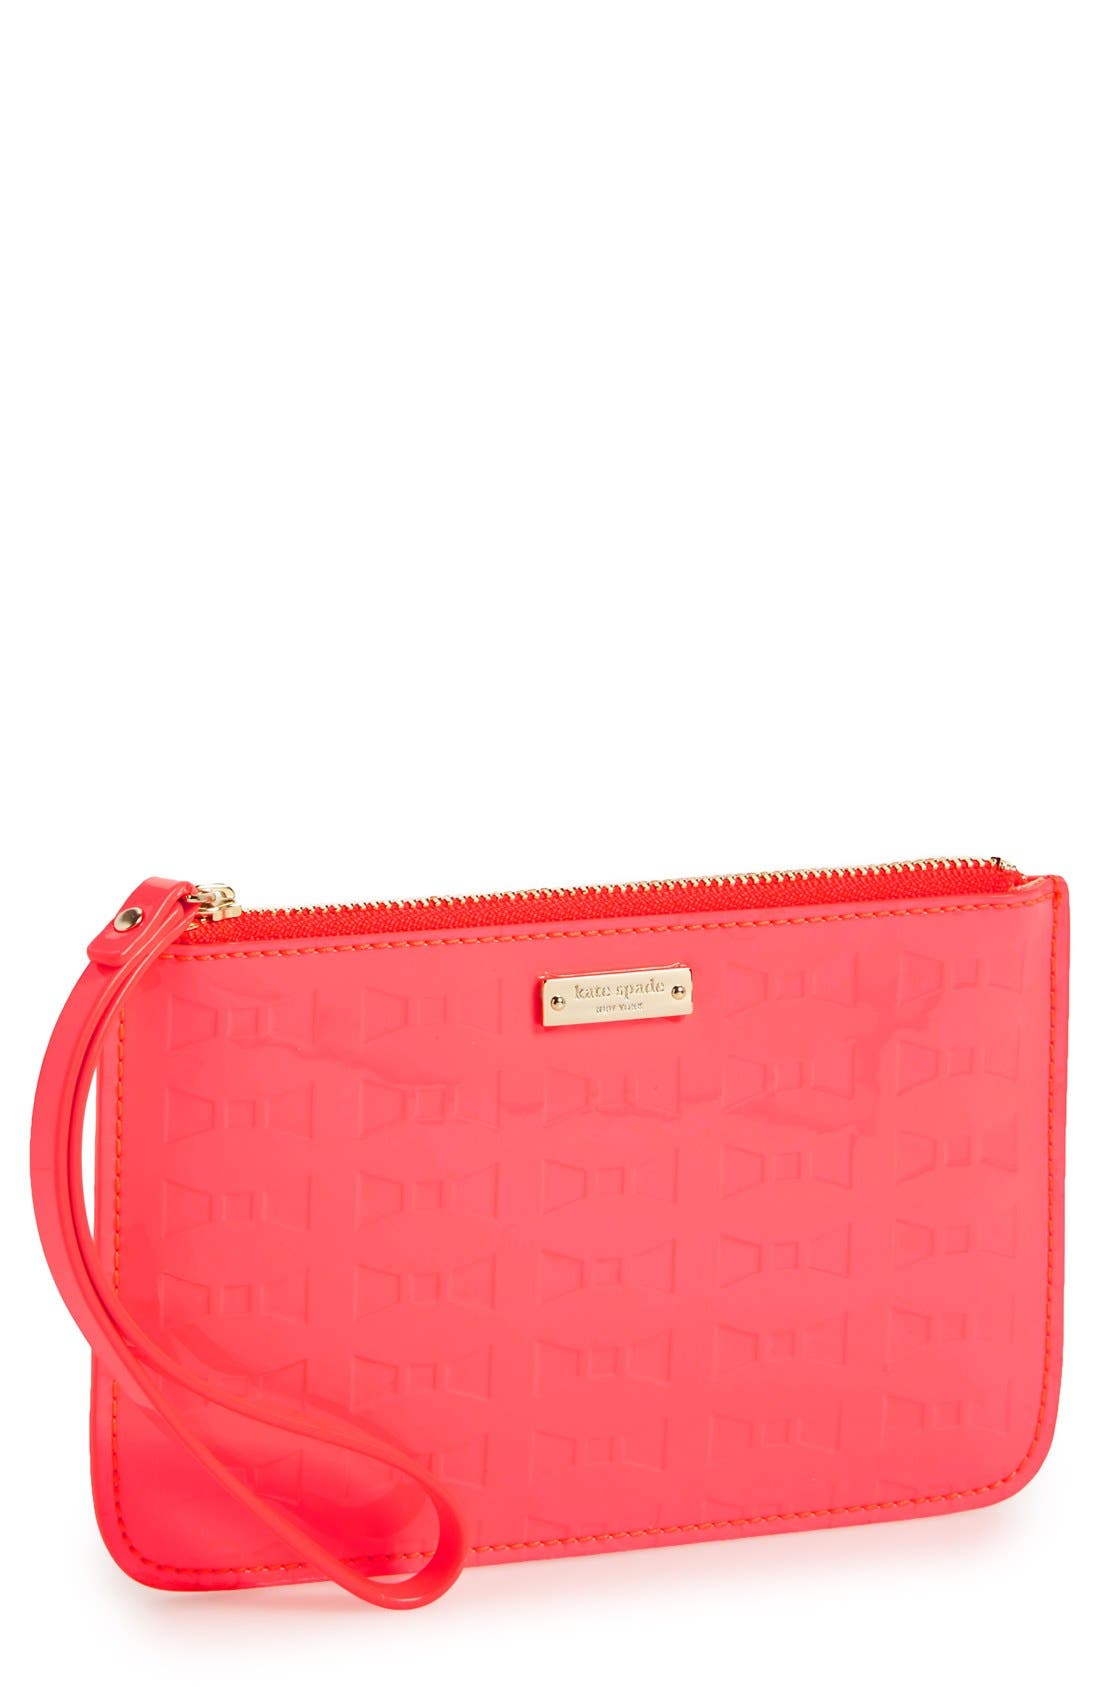 Alternate Image 1 Selected - kate spade new york 'fancy that - bee' wristlet